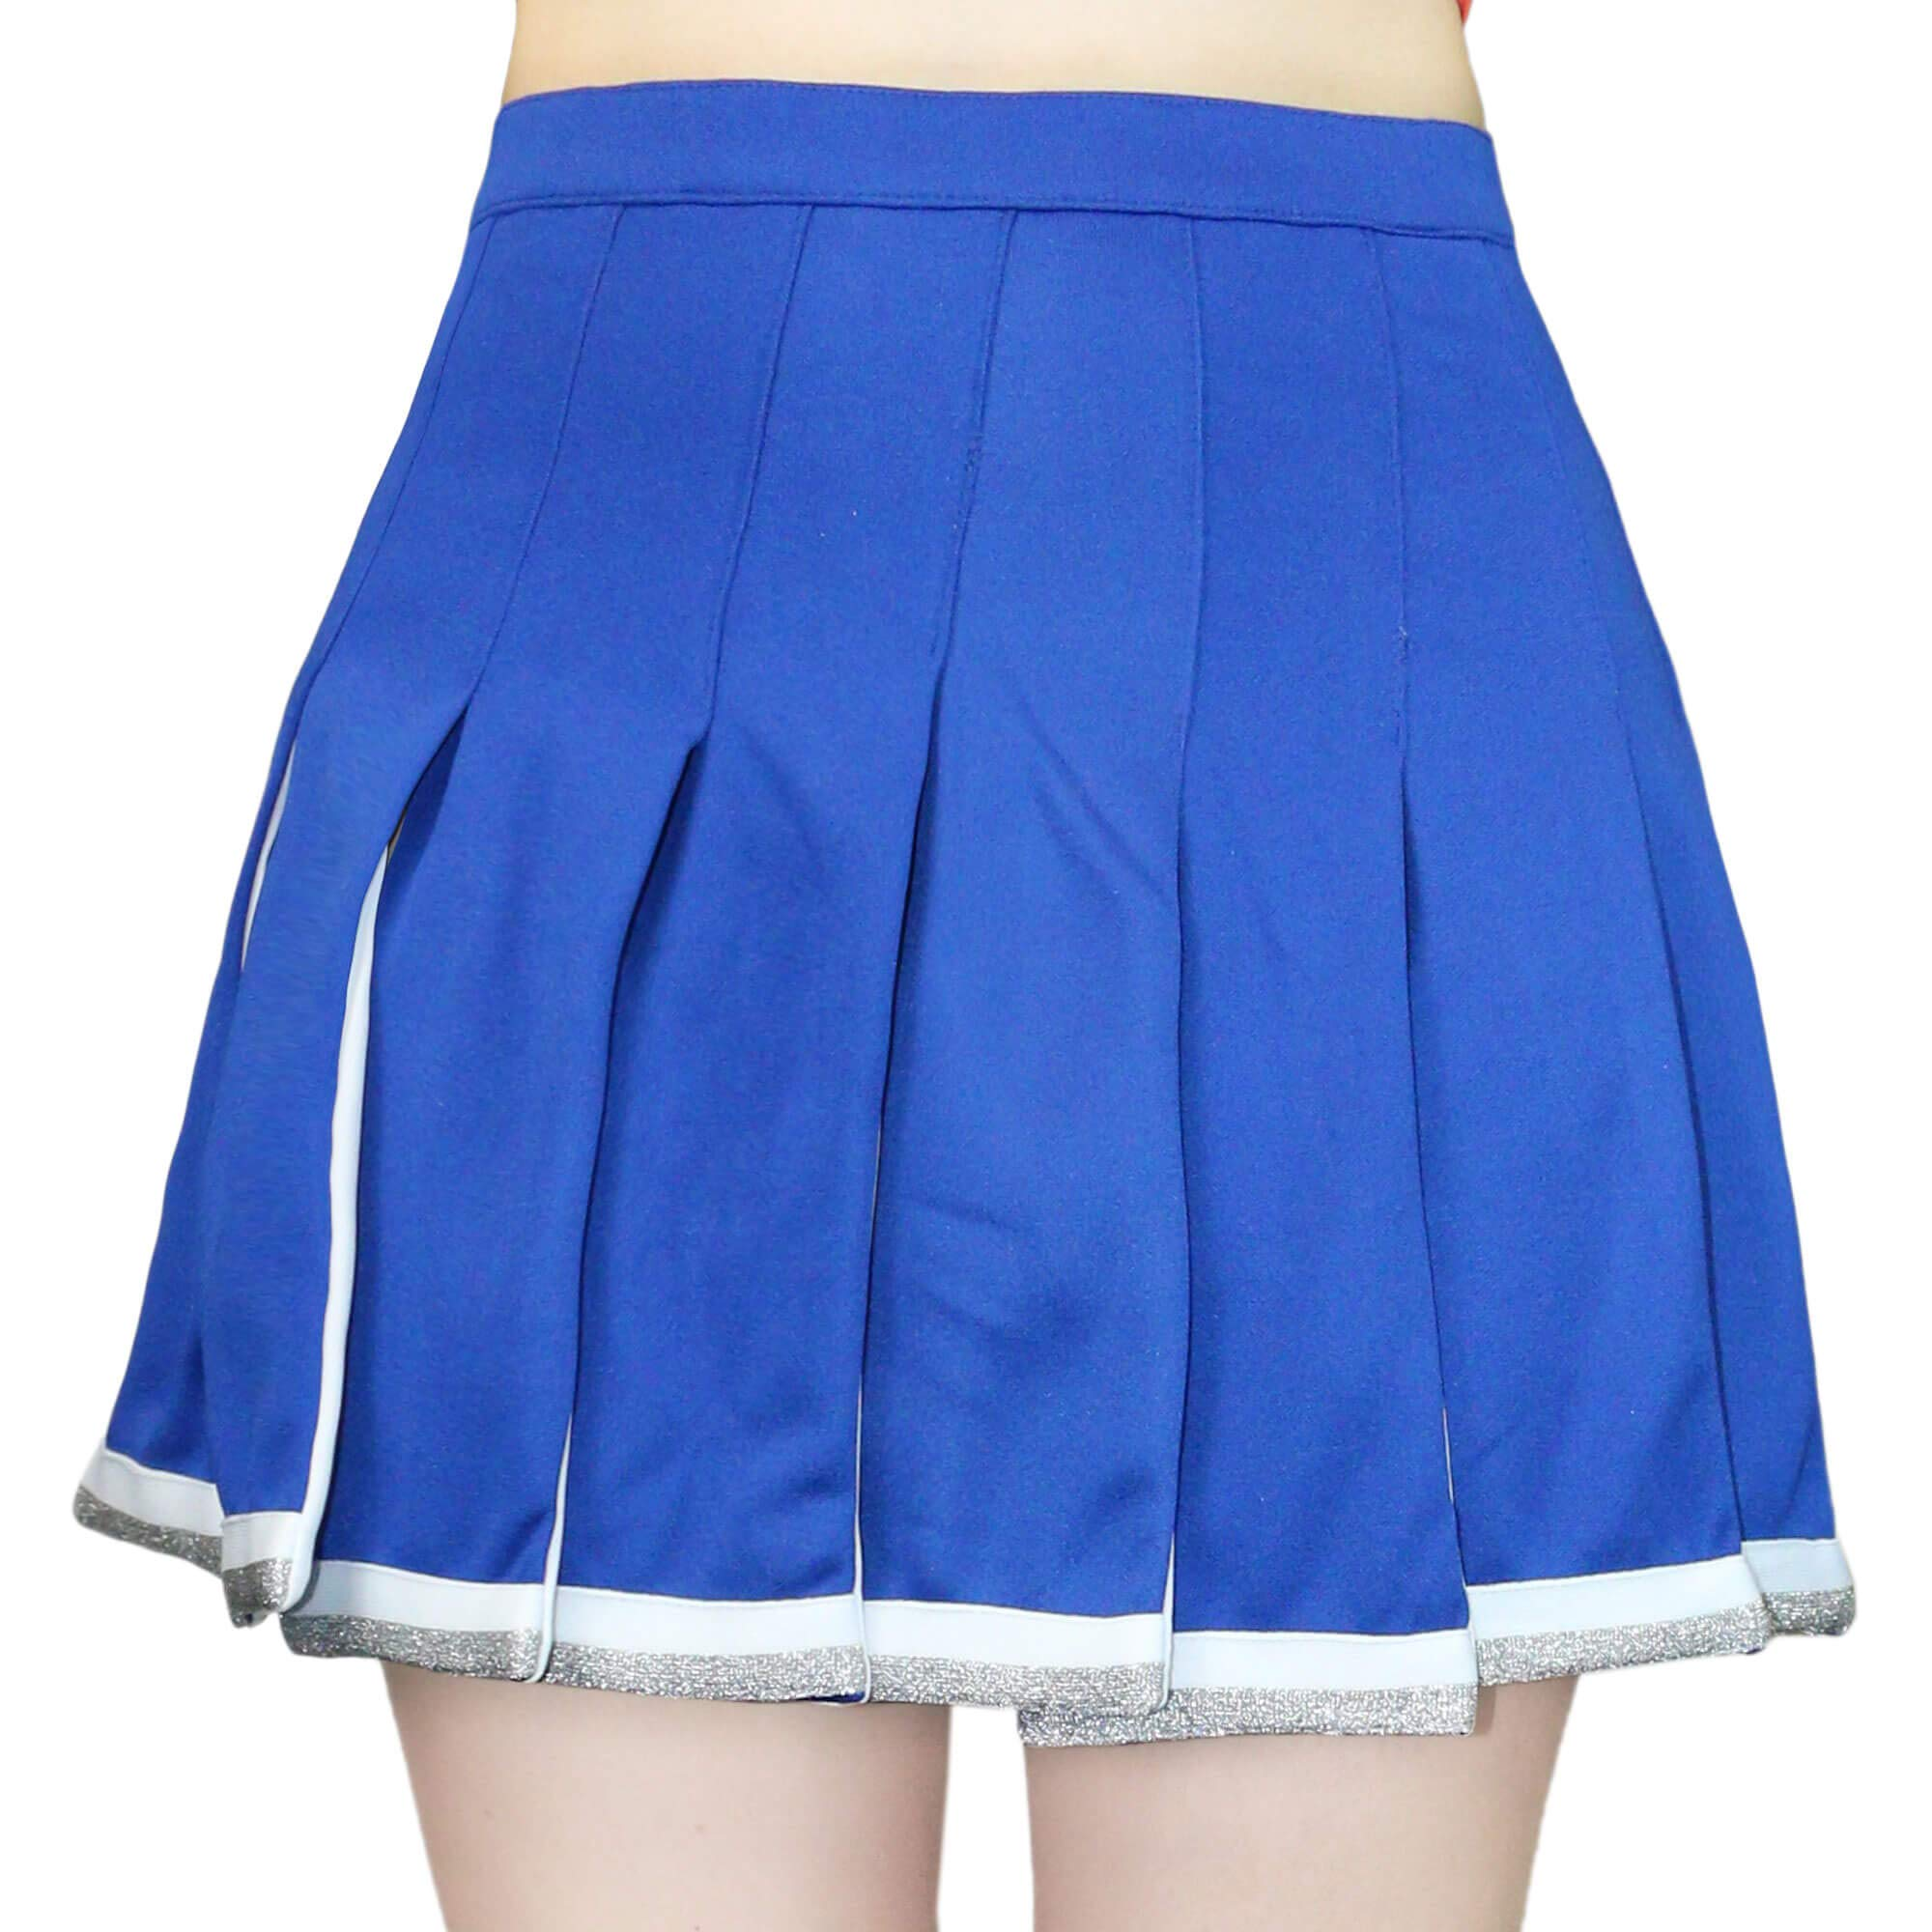 Danzcue Adult Cheerleading Pleated Skirt, Royal-White, Small by Danzcue